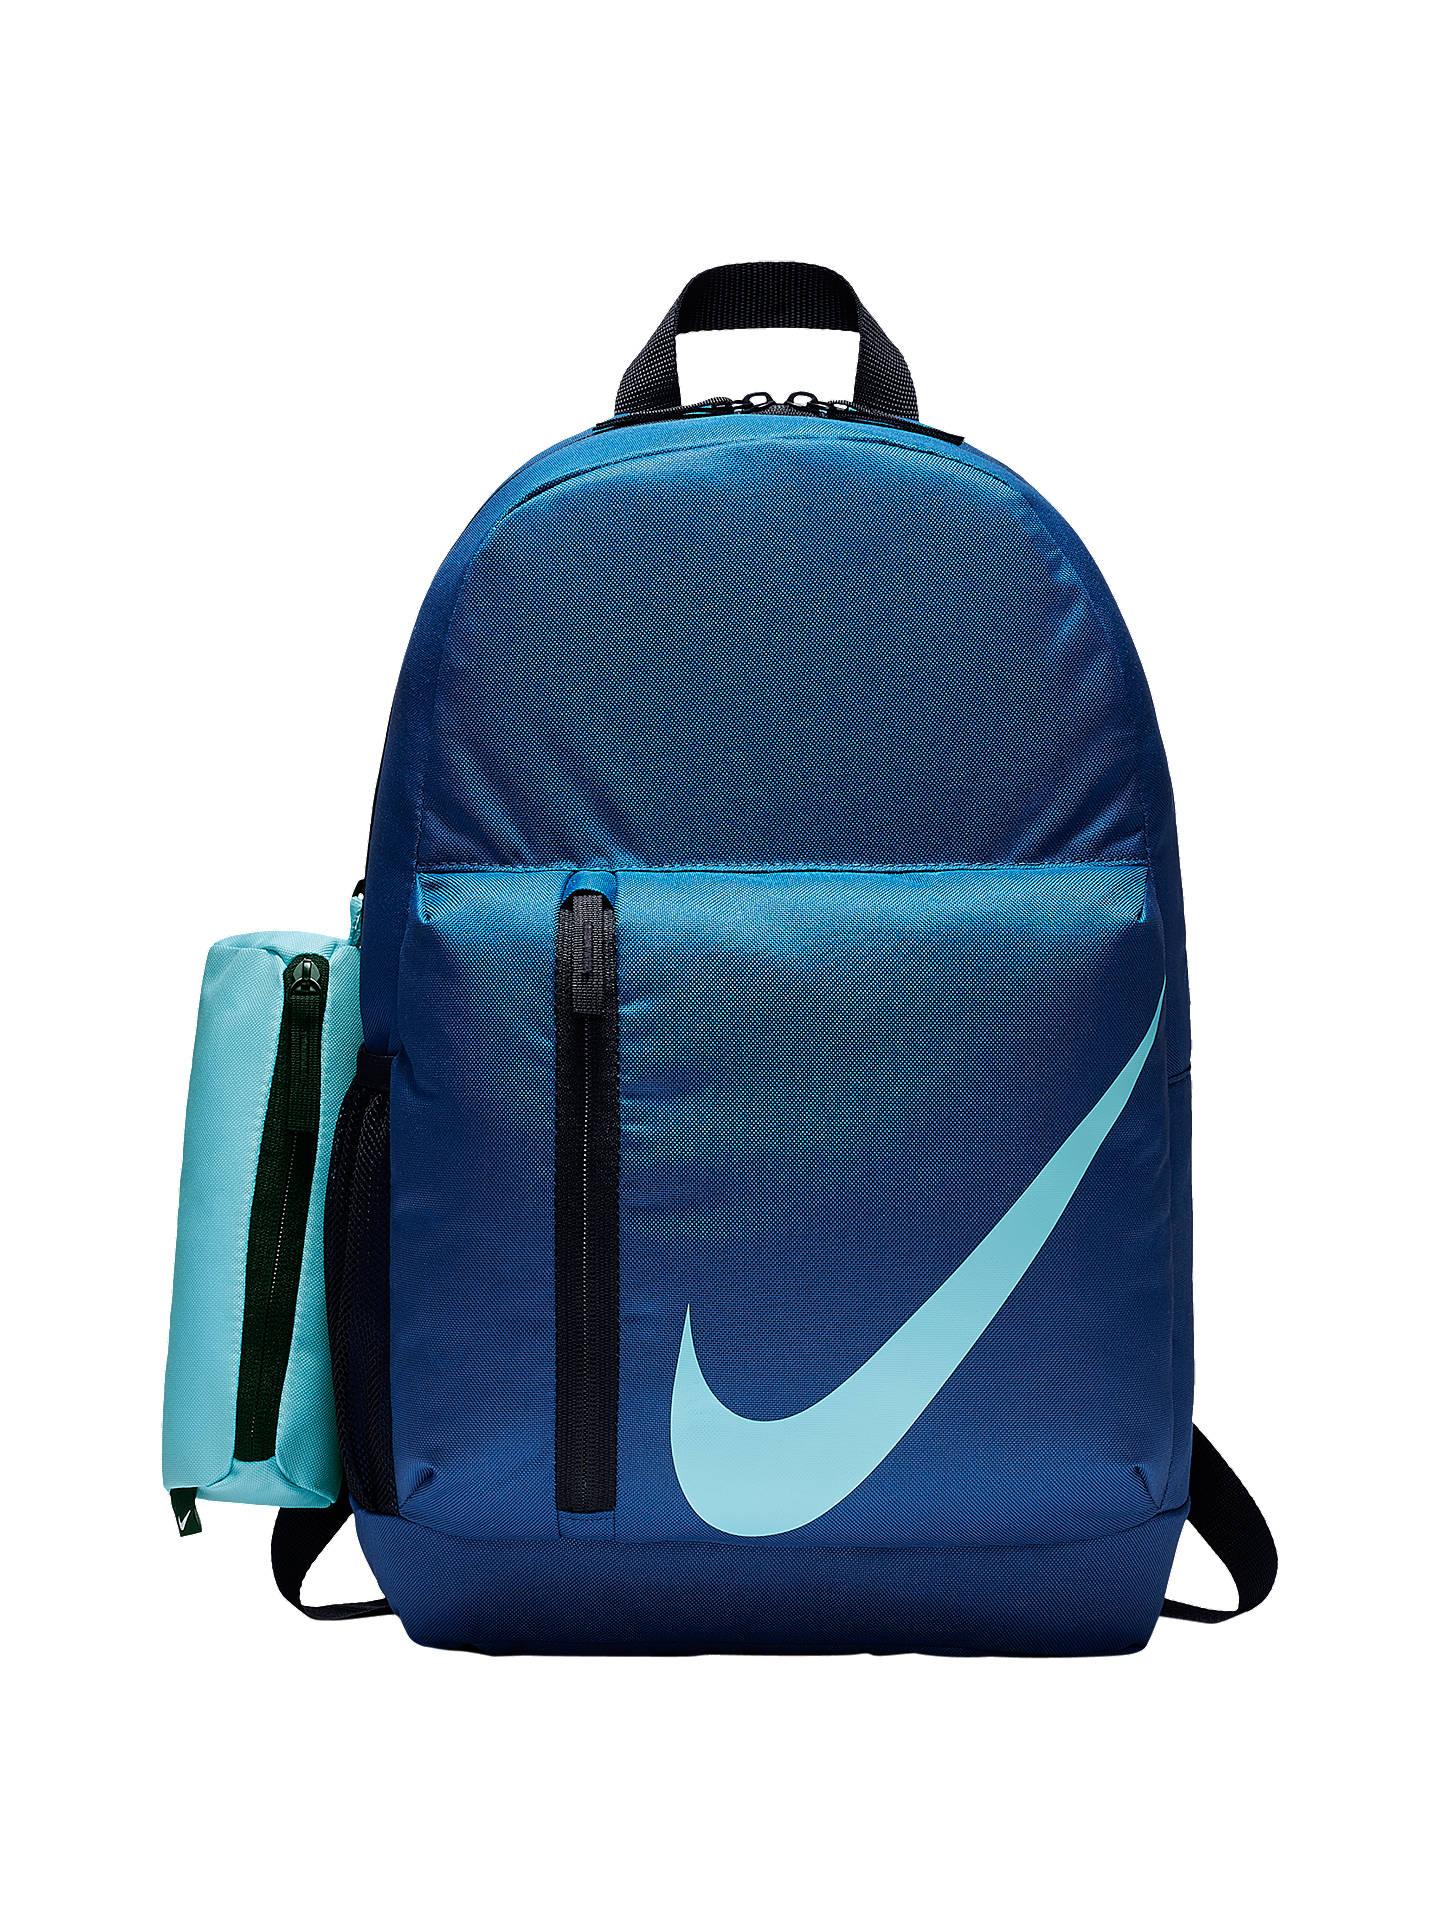 BuyNike Children s Elemental Backpack, Gym Blue Black Blue Chill Online at  johnlewis. d288a2c792